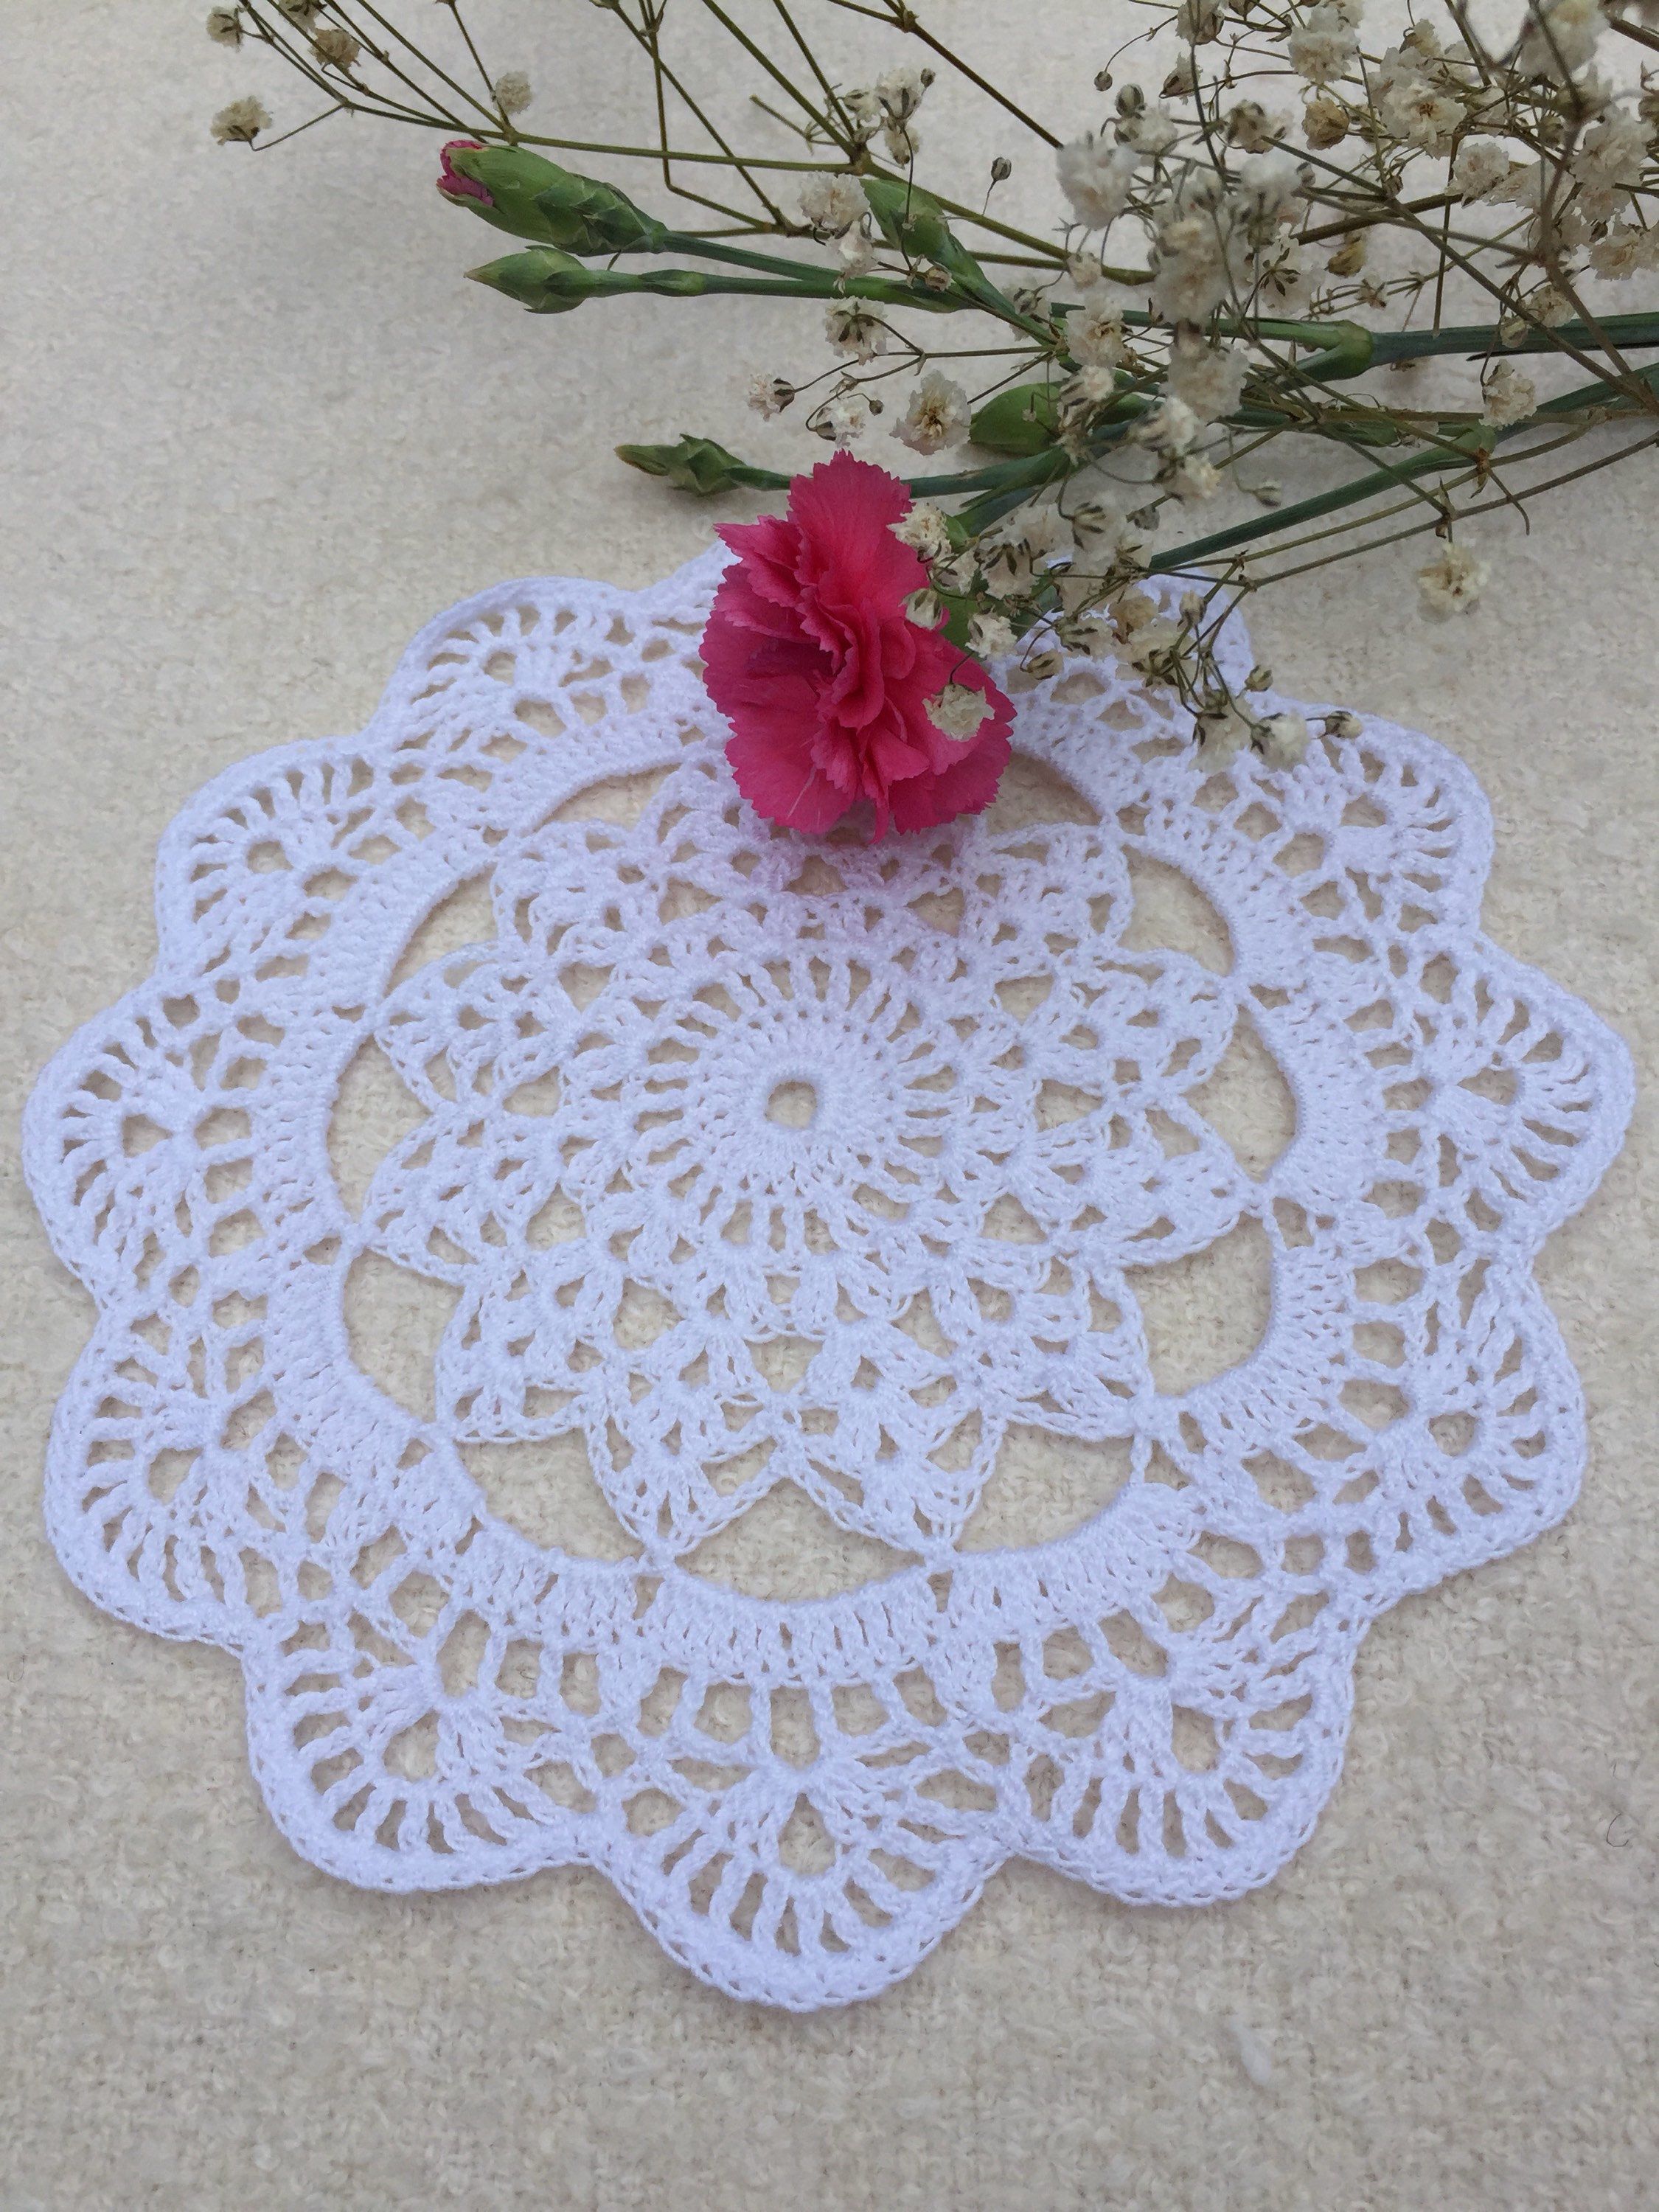 Knitted wedding decorations  Crochet Lace Doily Table Decoration Knitted White Round Doily Cotton